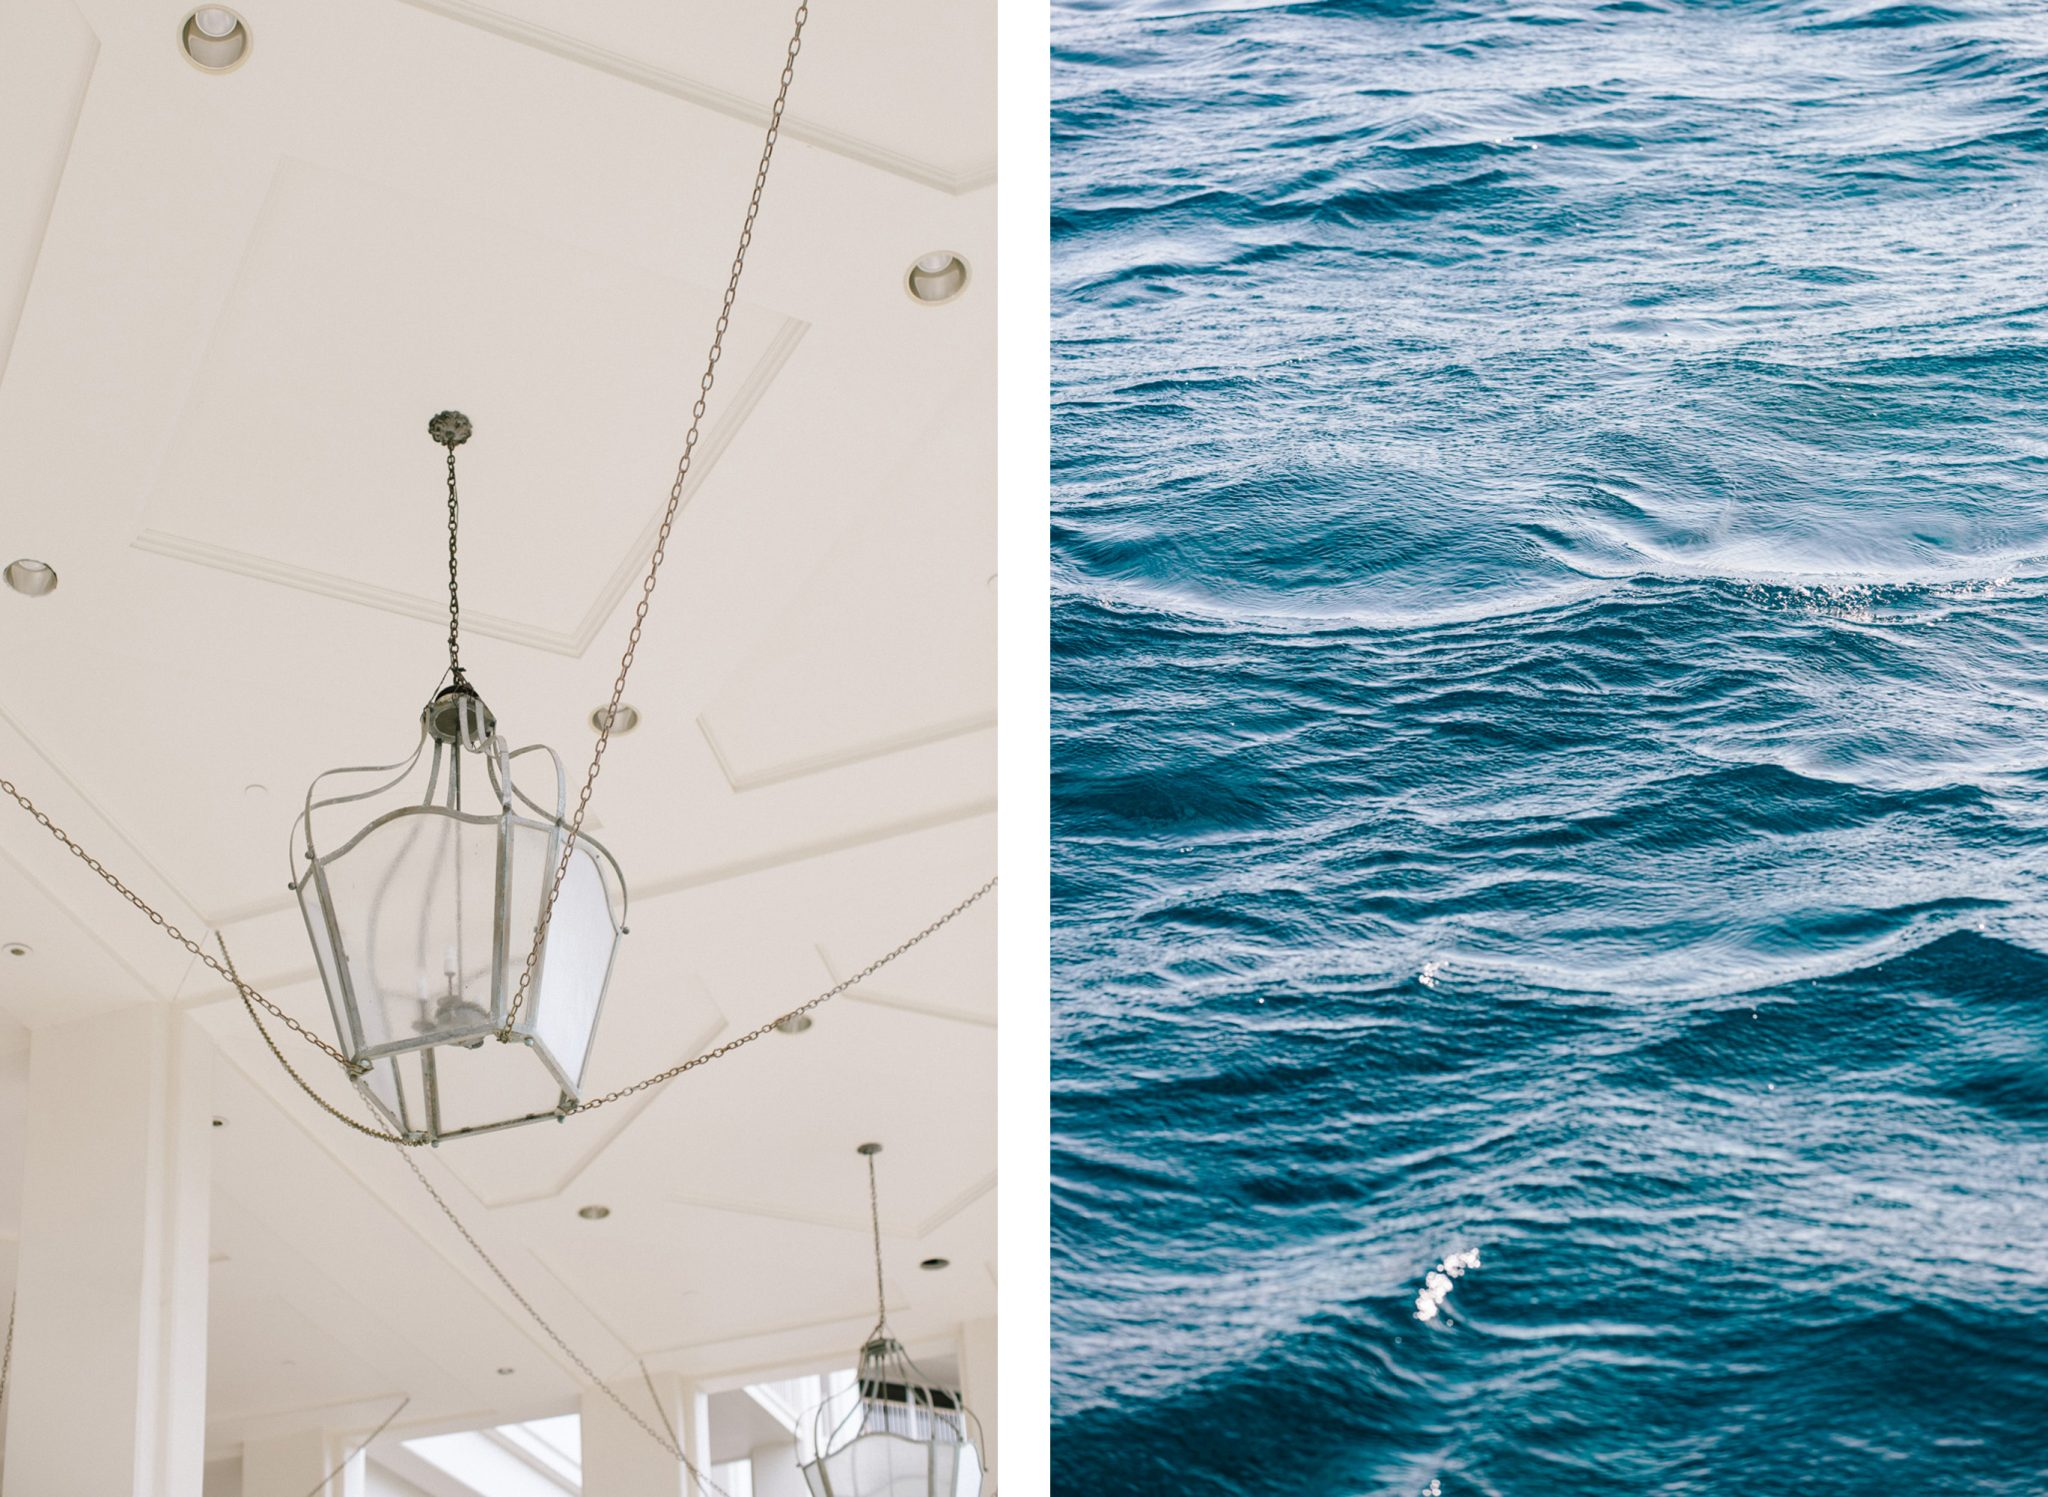 Oahu light fixture, ocean surface comparison